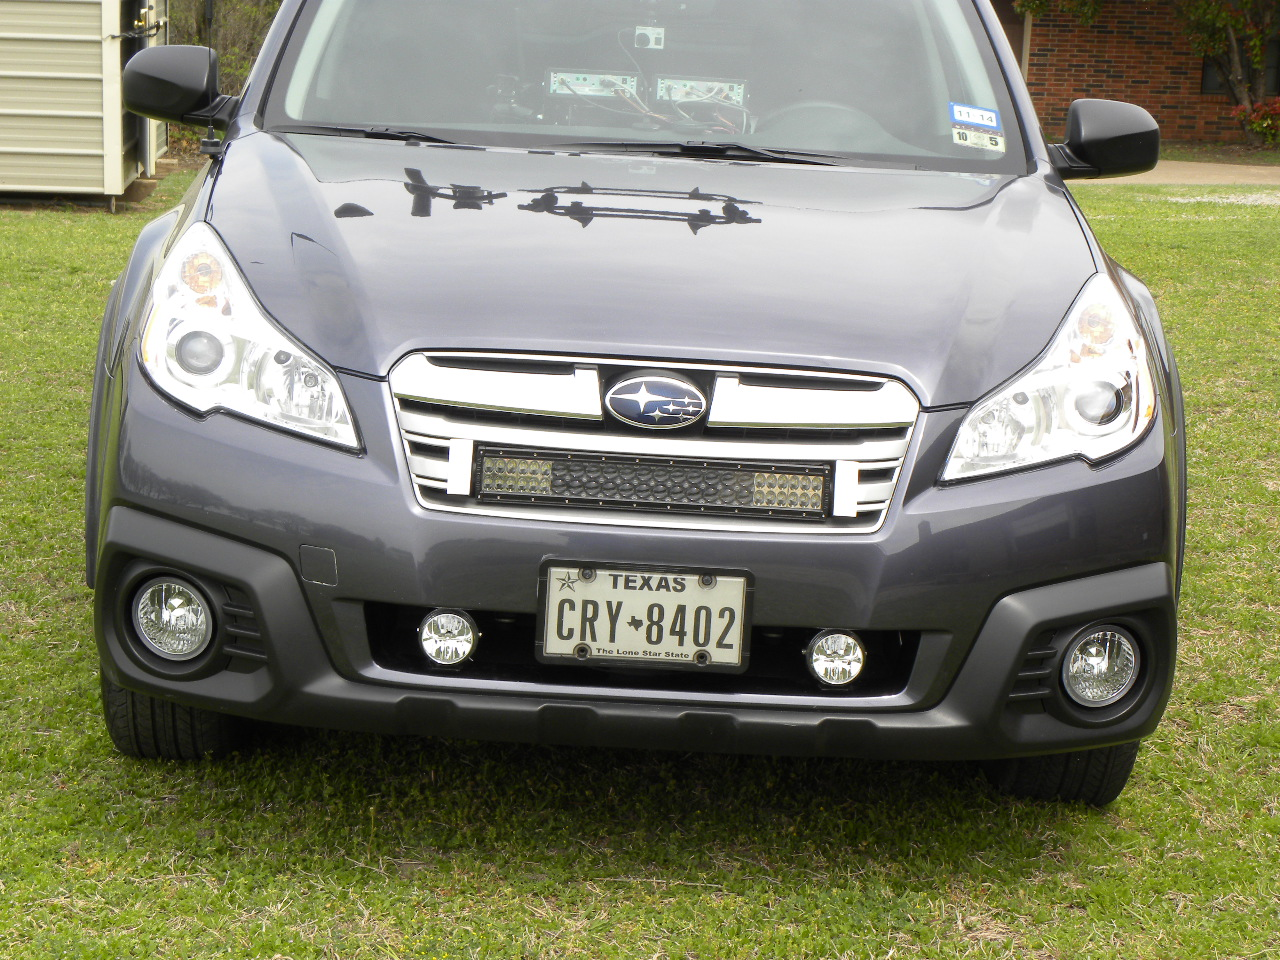 LED light bar options - Subaru Outback - Subaru Outback Forums